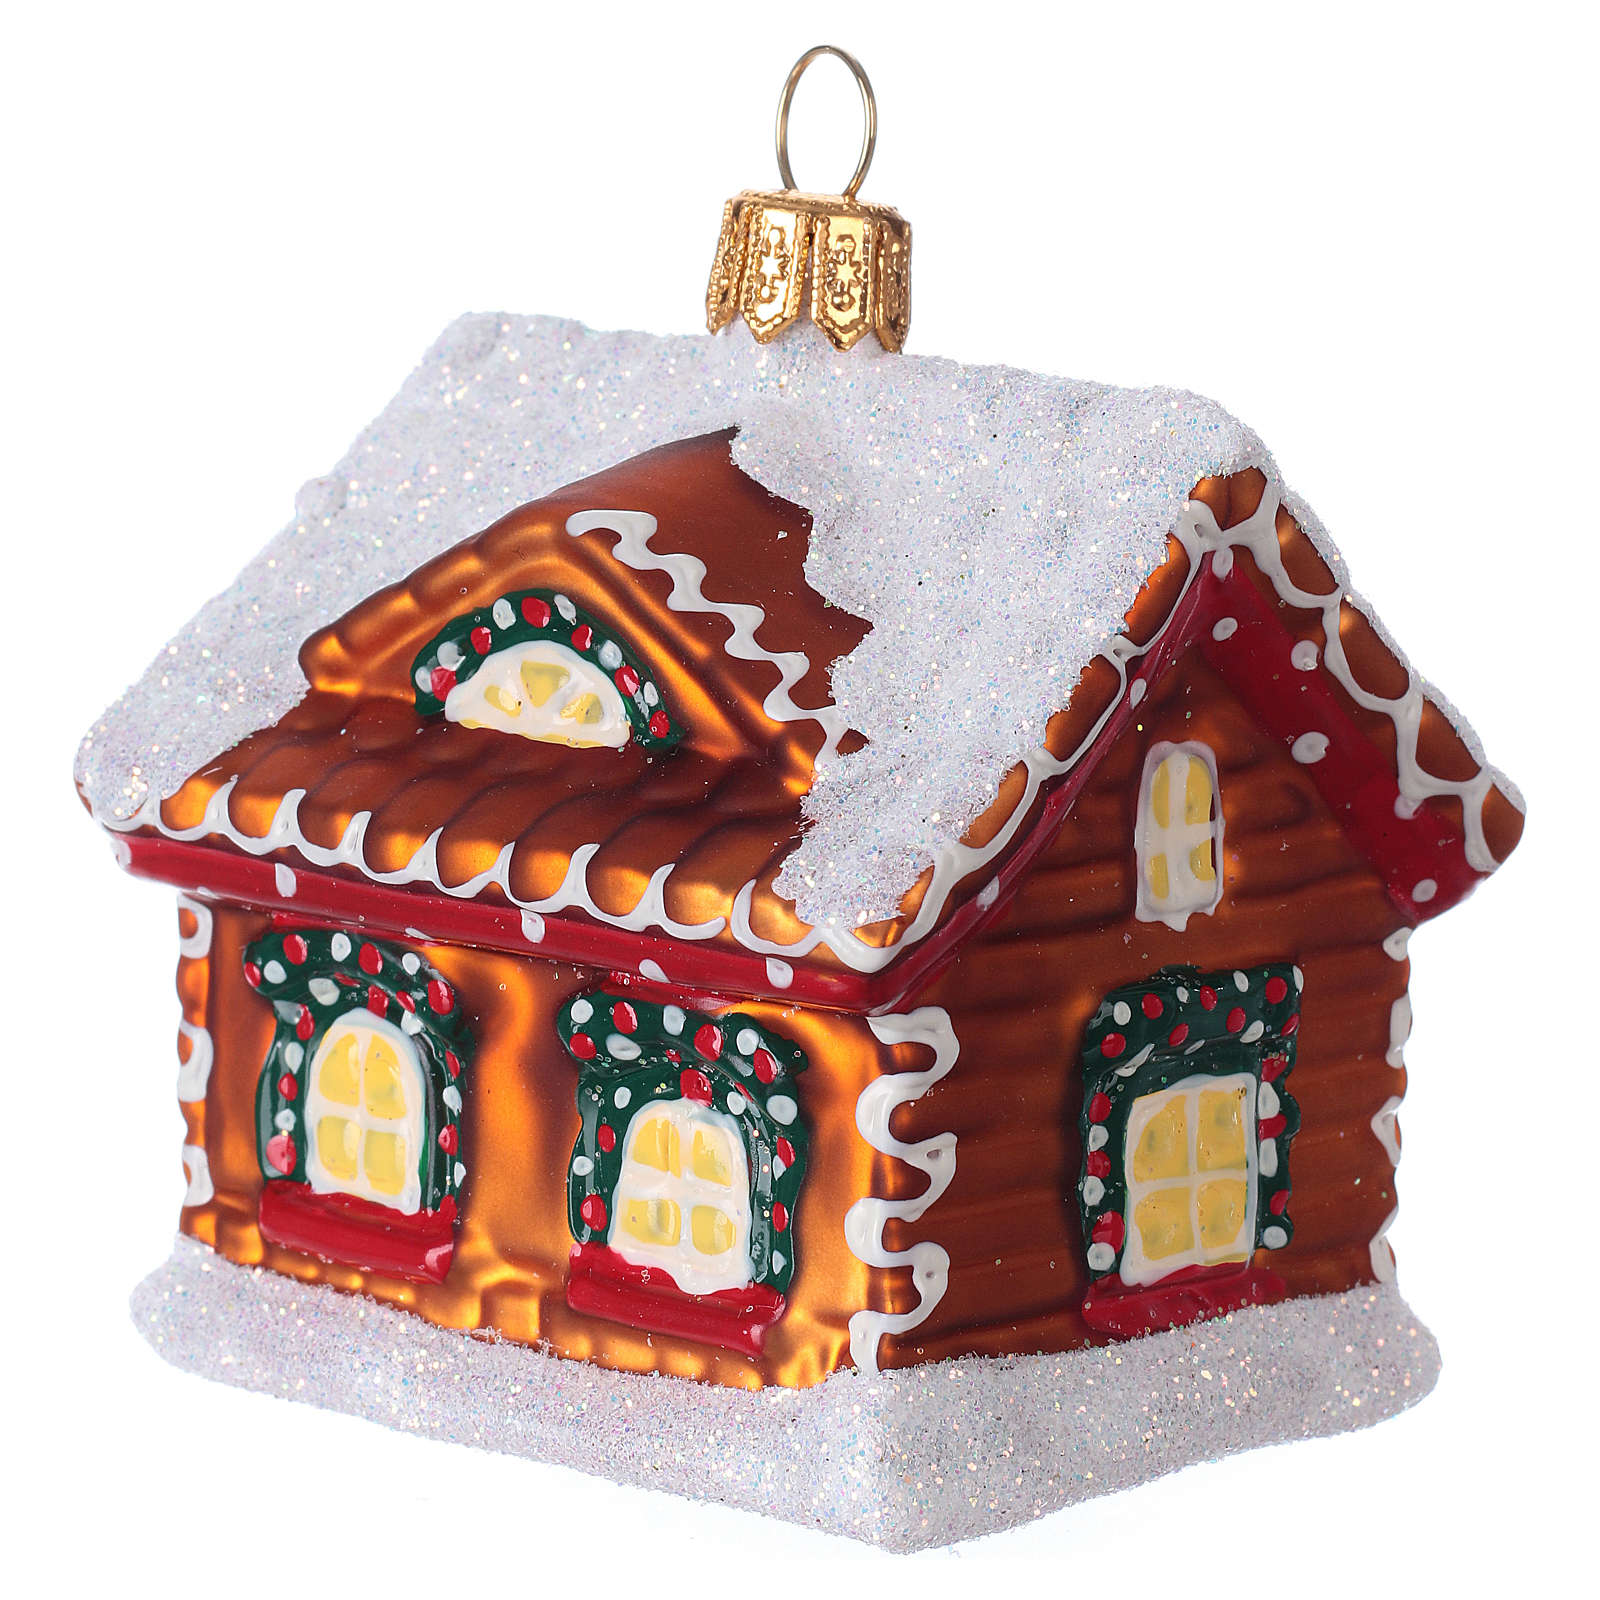 Blown glass Christmas ornament, gingerbread house with snow 4